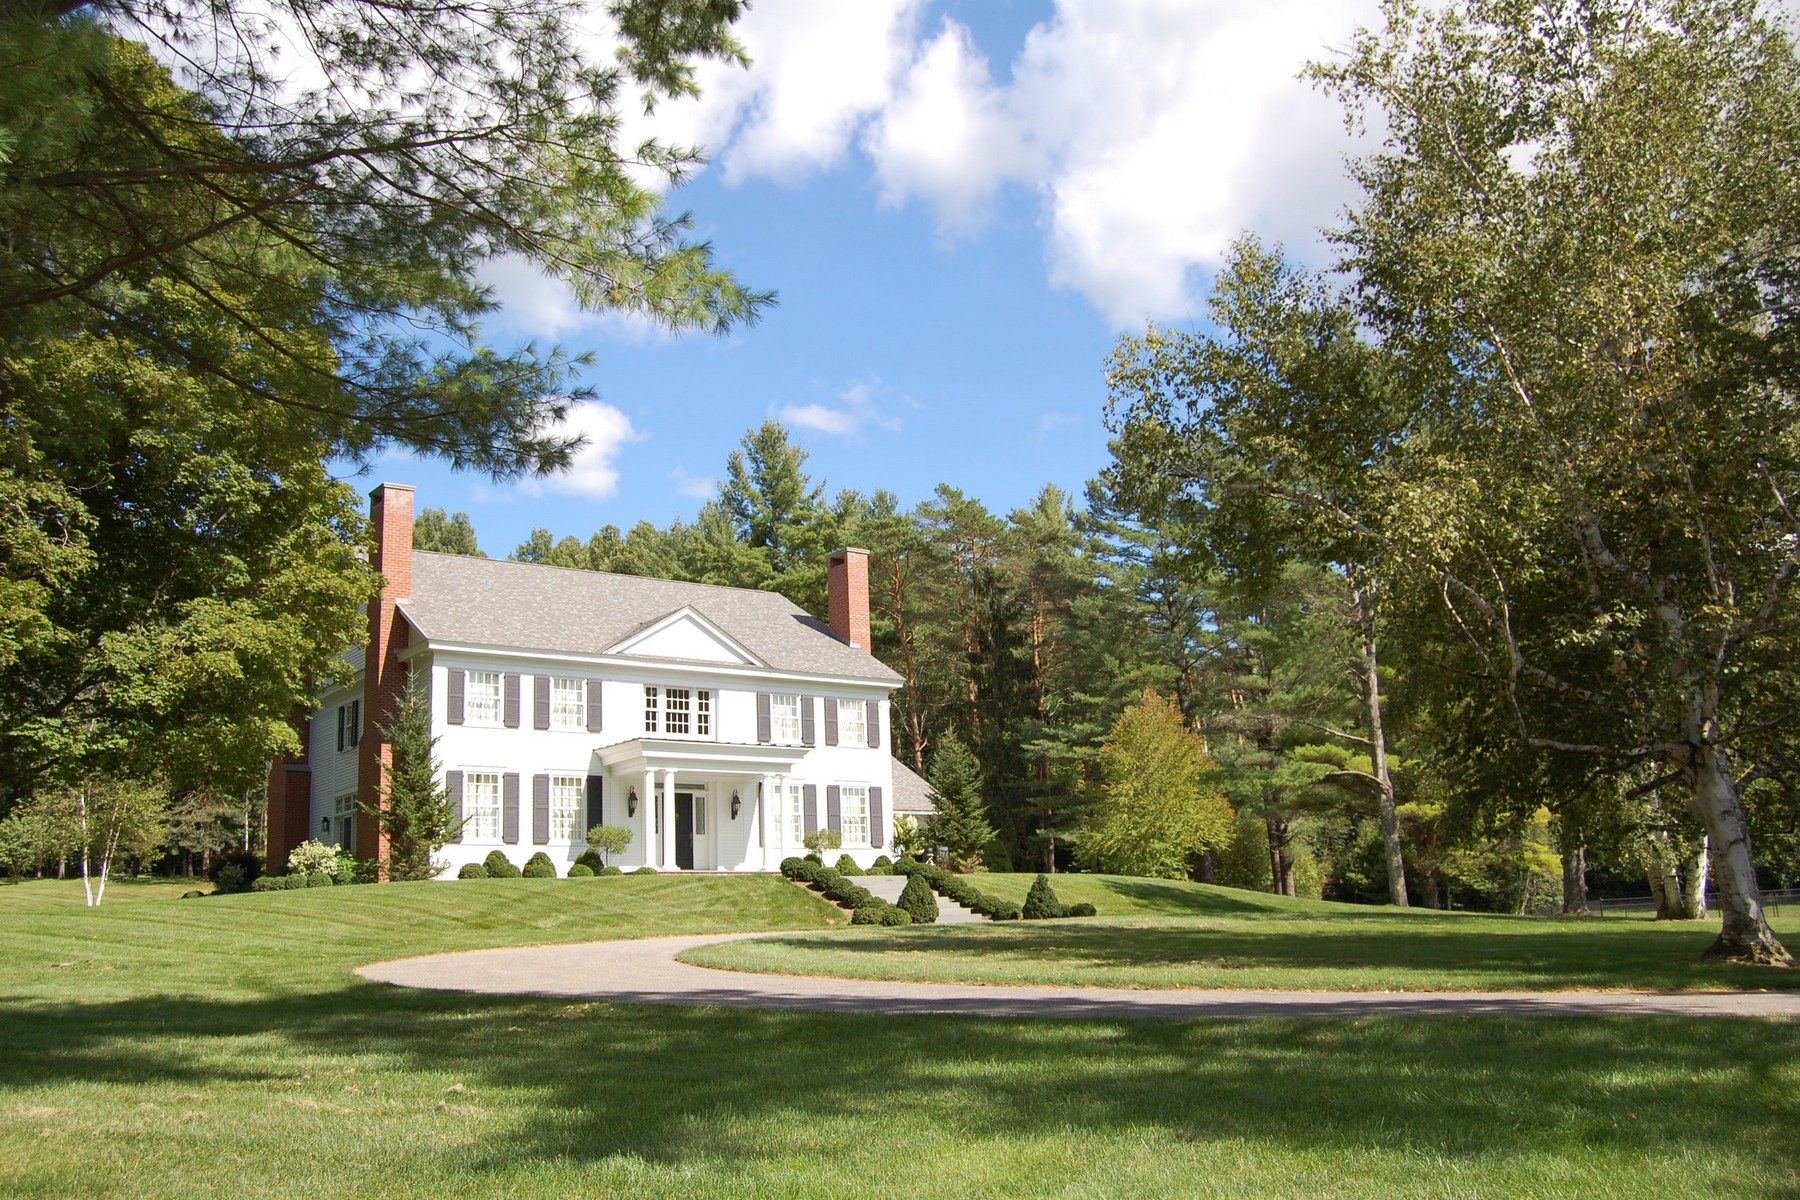 Single Family Home for Sale at 92 Cascades Rd, Manchester Manchester, Vermont, 05254 United States